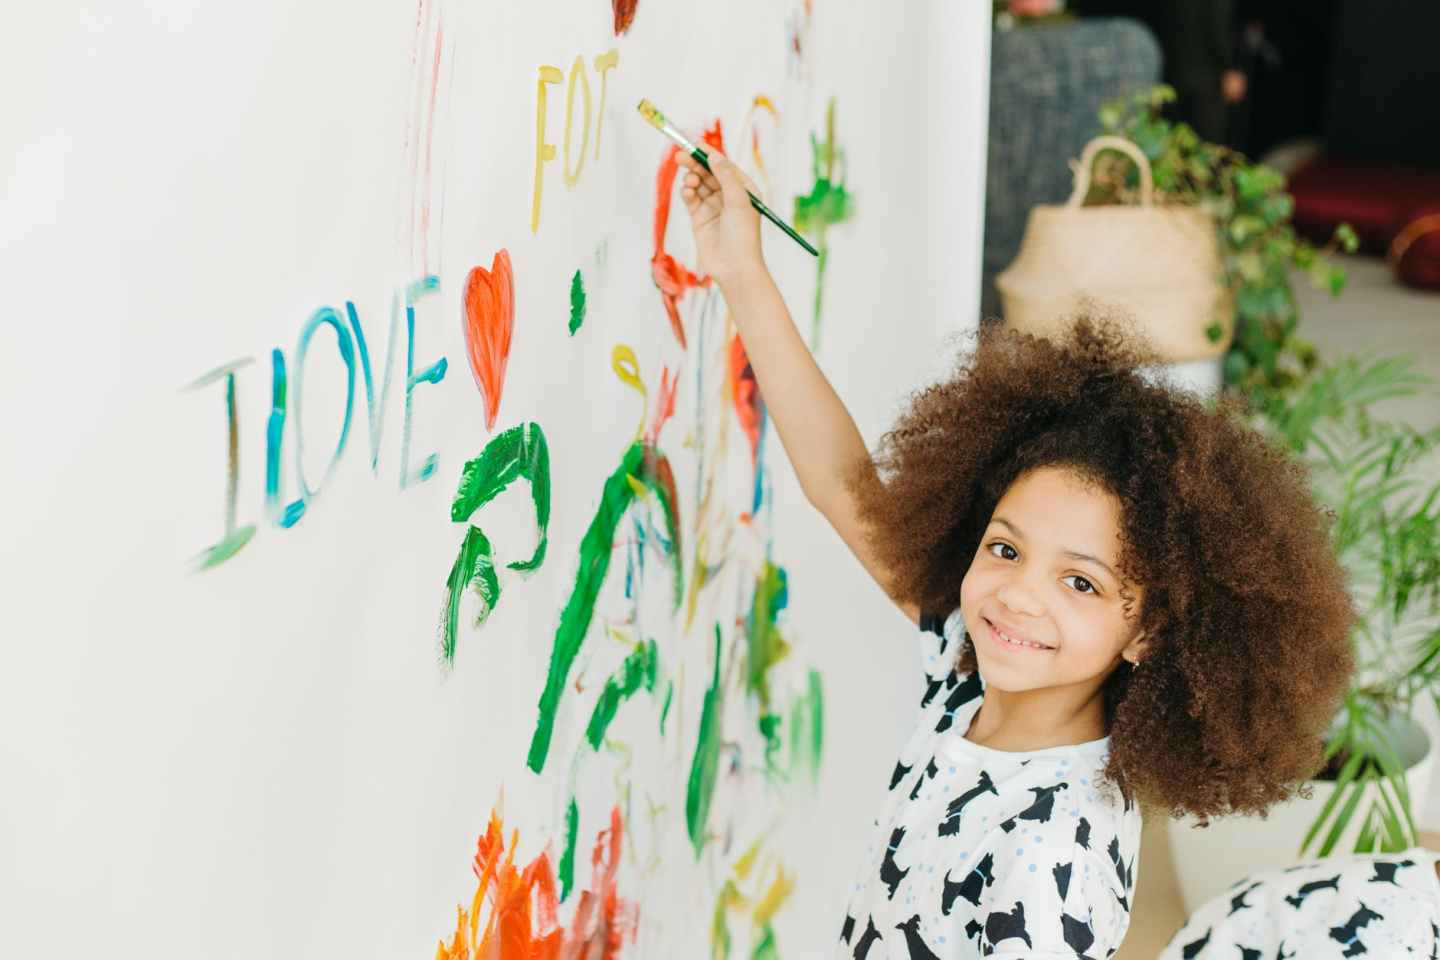 smiling girl with curly hair painting on wall